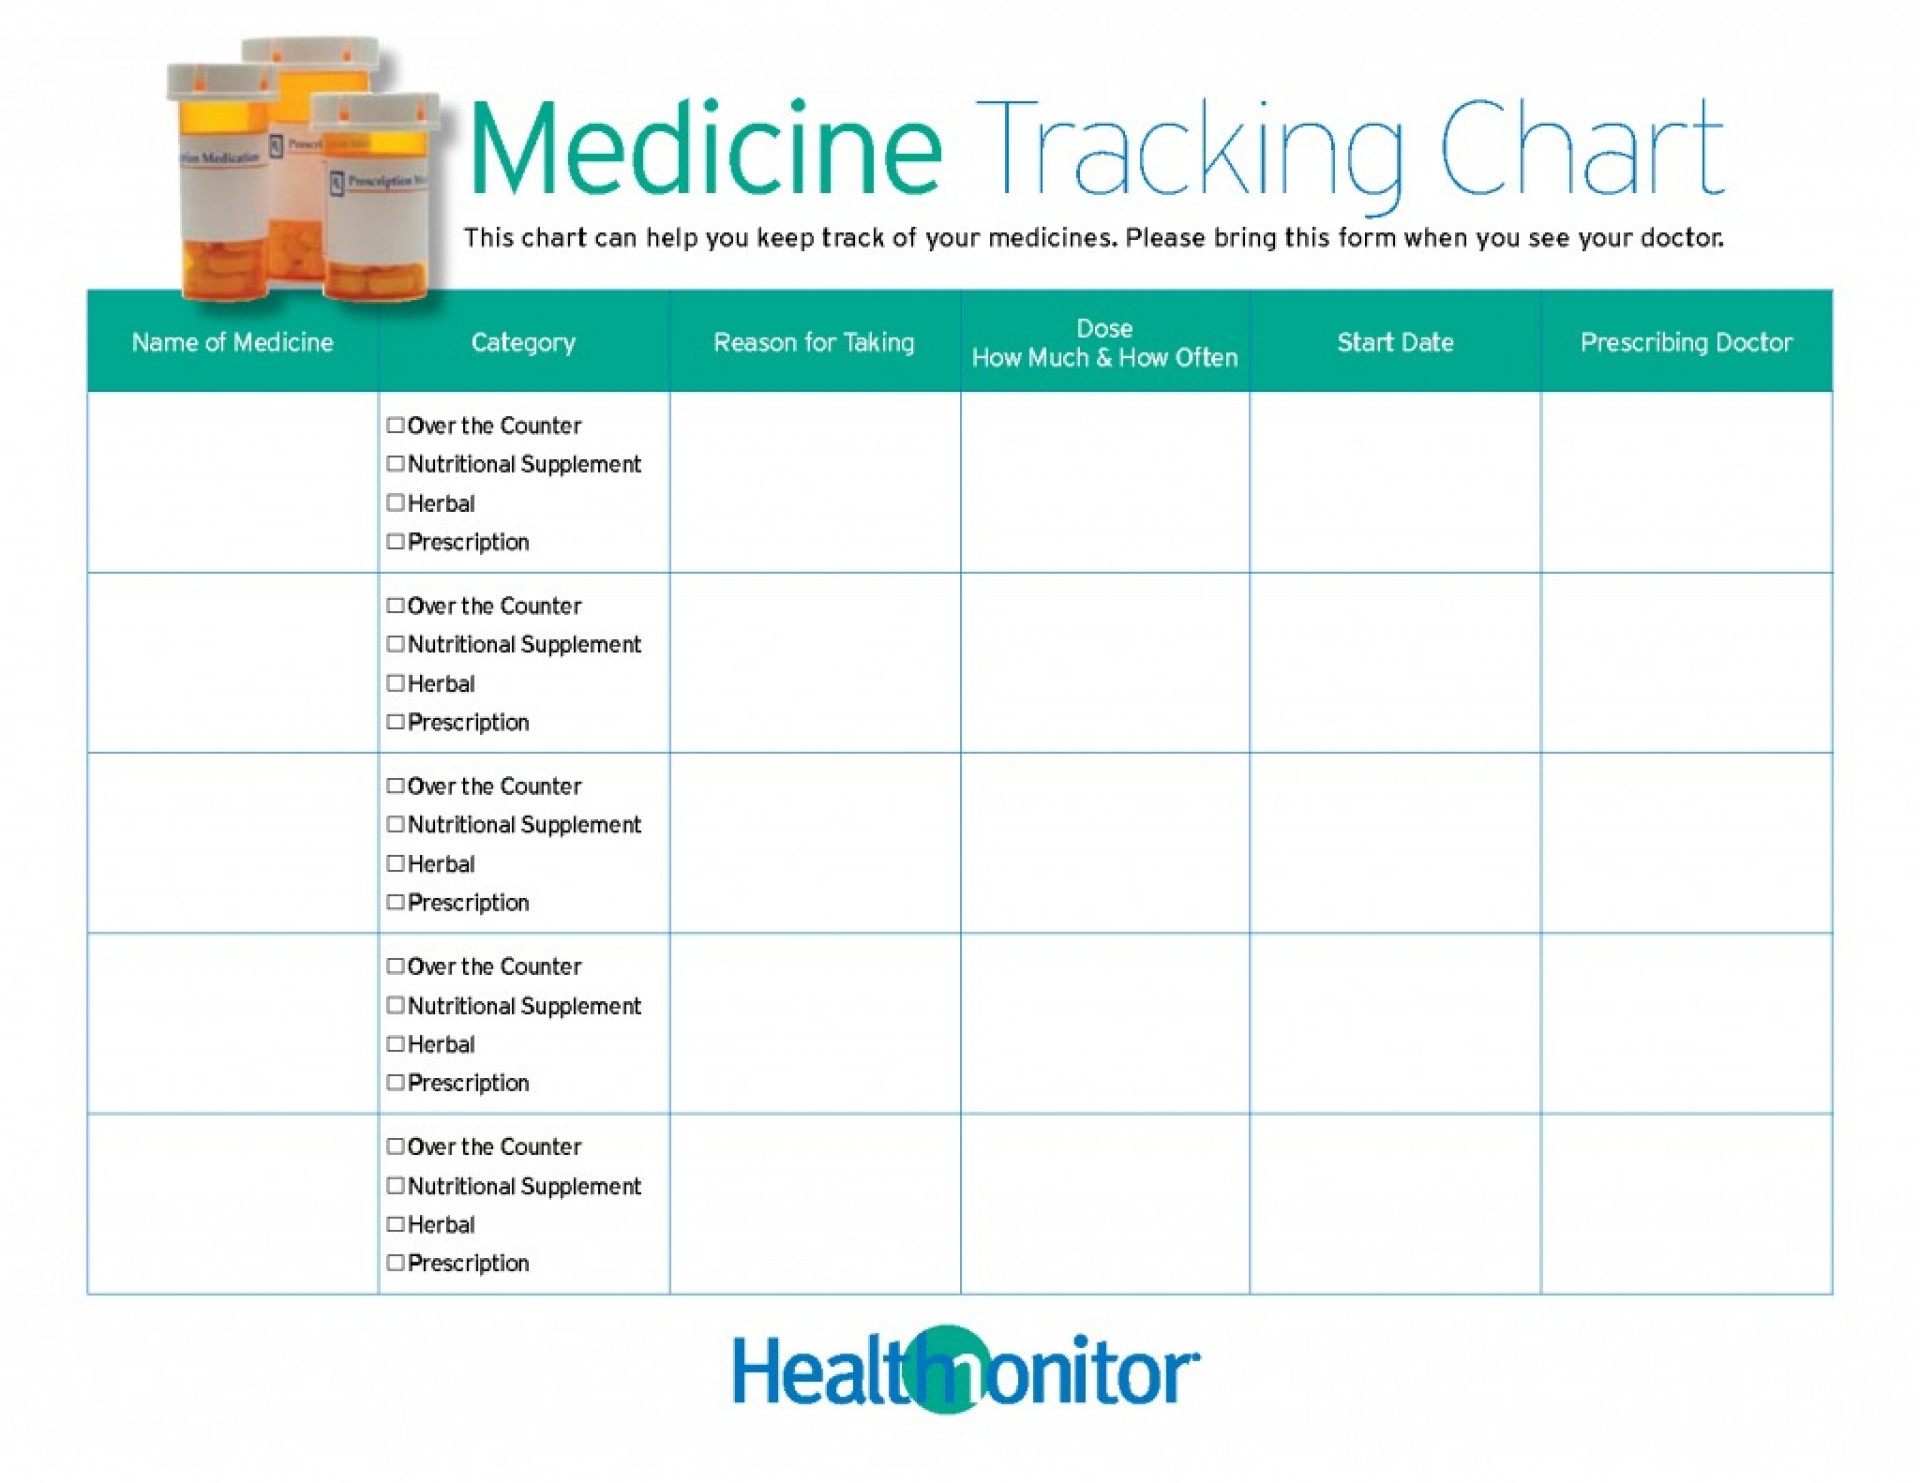 005 Daily Medication Schedule Template Ideas Medical Startup - Free Printable Medicine Daily Chart